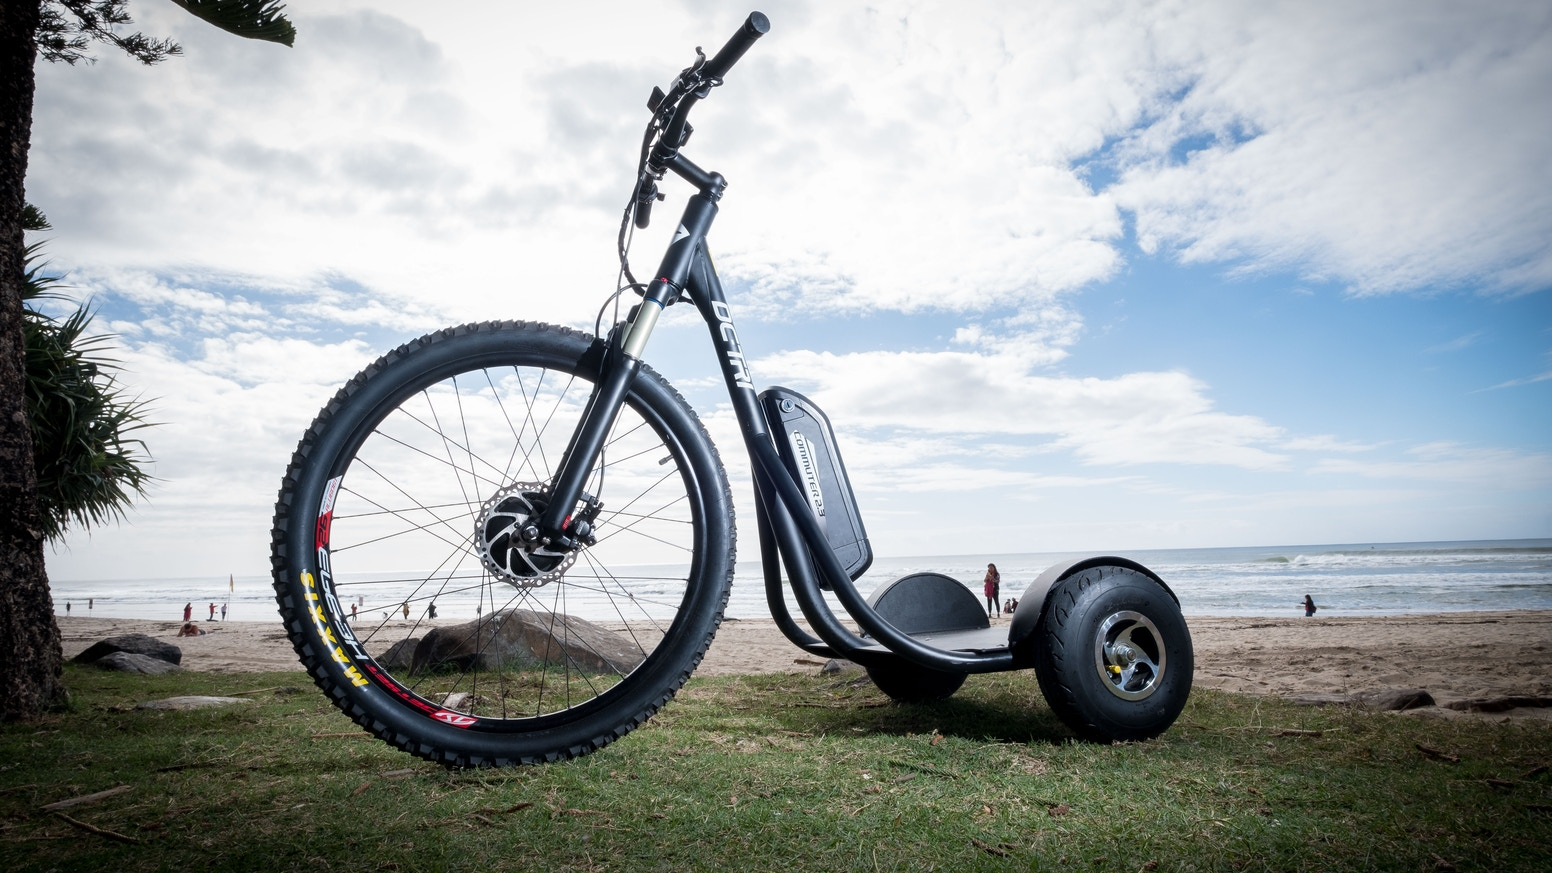 Shred with this uniquely designed, high-quality, eco-friendly electric stand-up e-bike that hits up to 15mph!